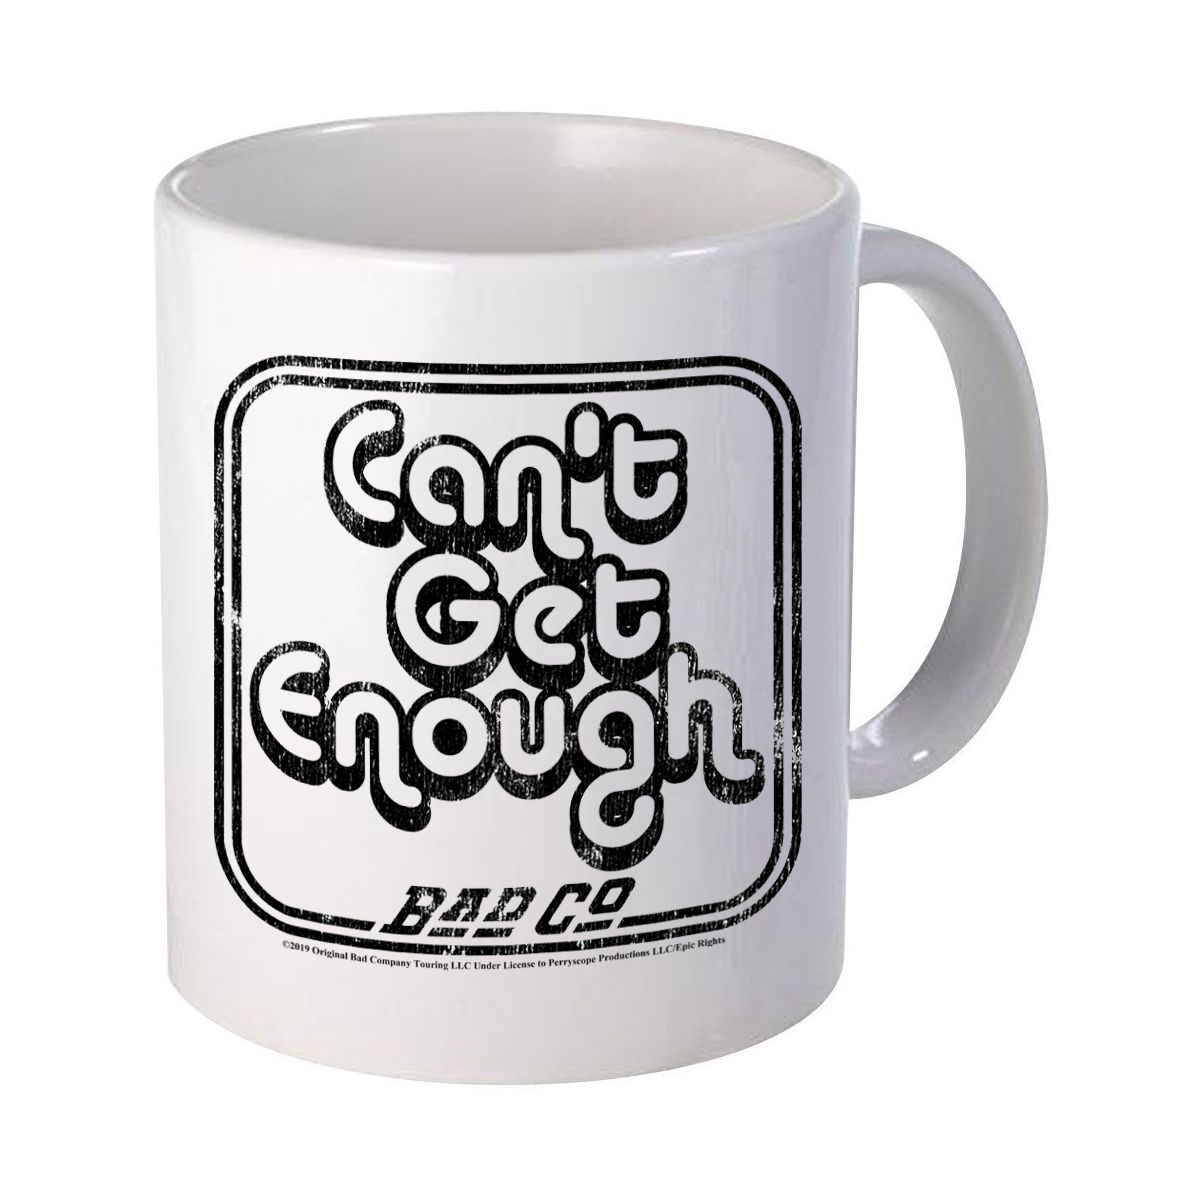 Can't Get Enough Mug